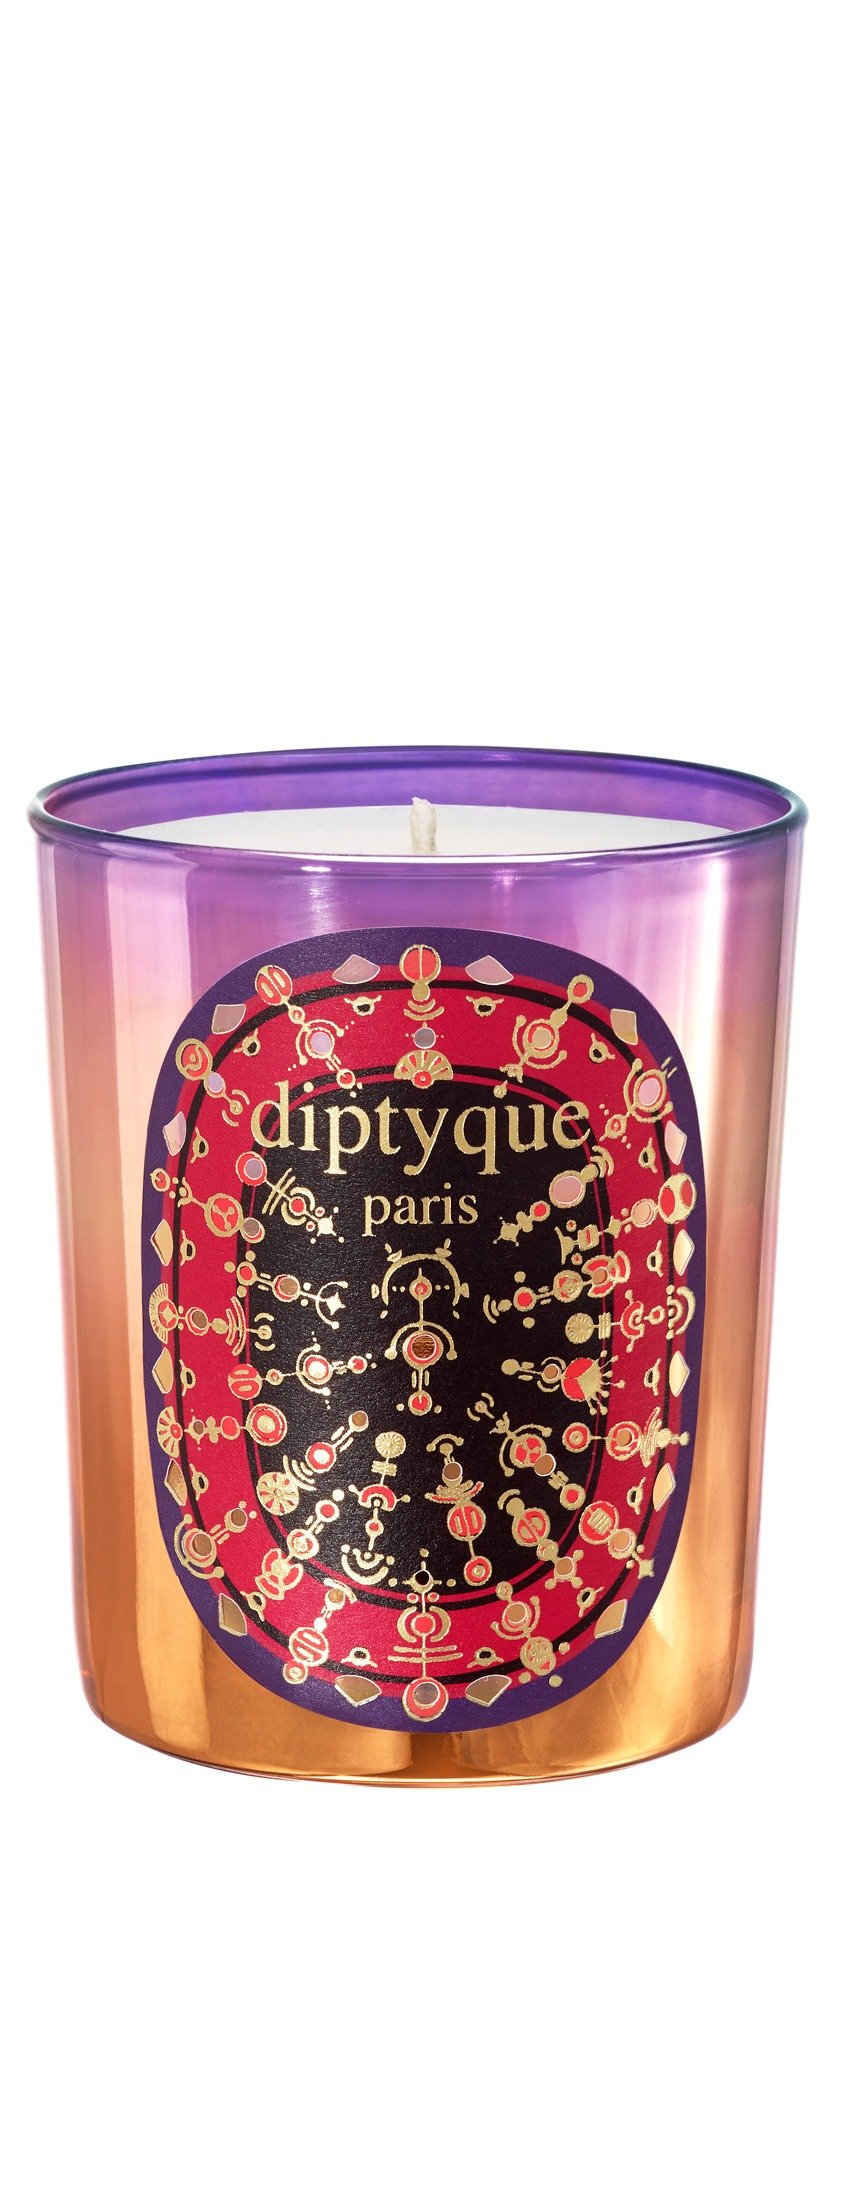 Diptyque Indian Incense Candle 6.5Oz